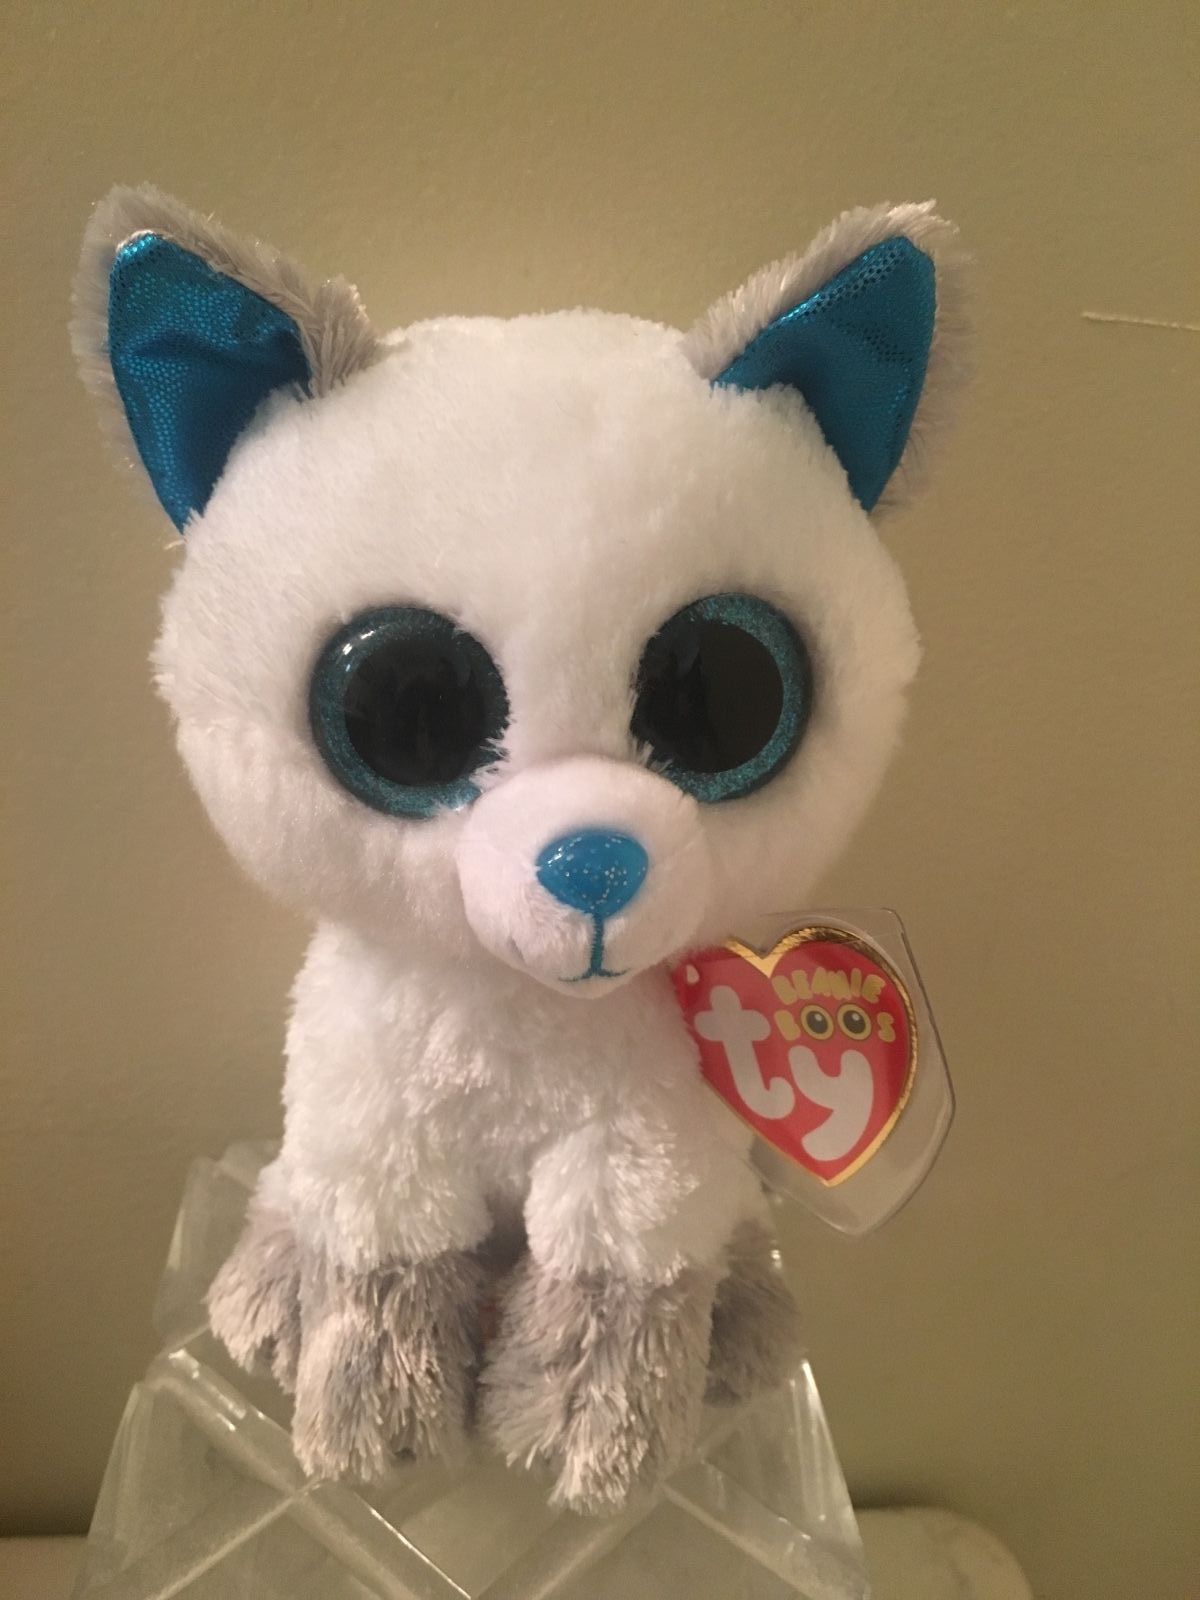 Current 438  Ty Beanie Boo Frost The Arctic Fox 6 New Exclusive Mwmt -  BUY  IT NOW ONLY   13.99 on eBay! 8159af700c58